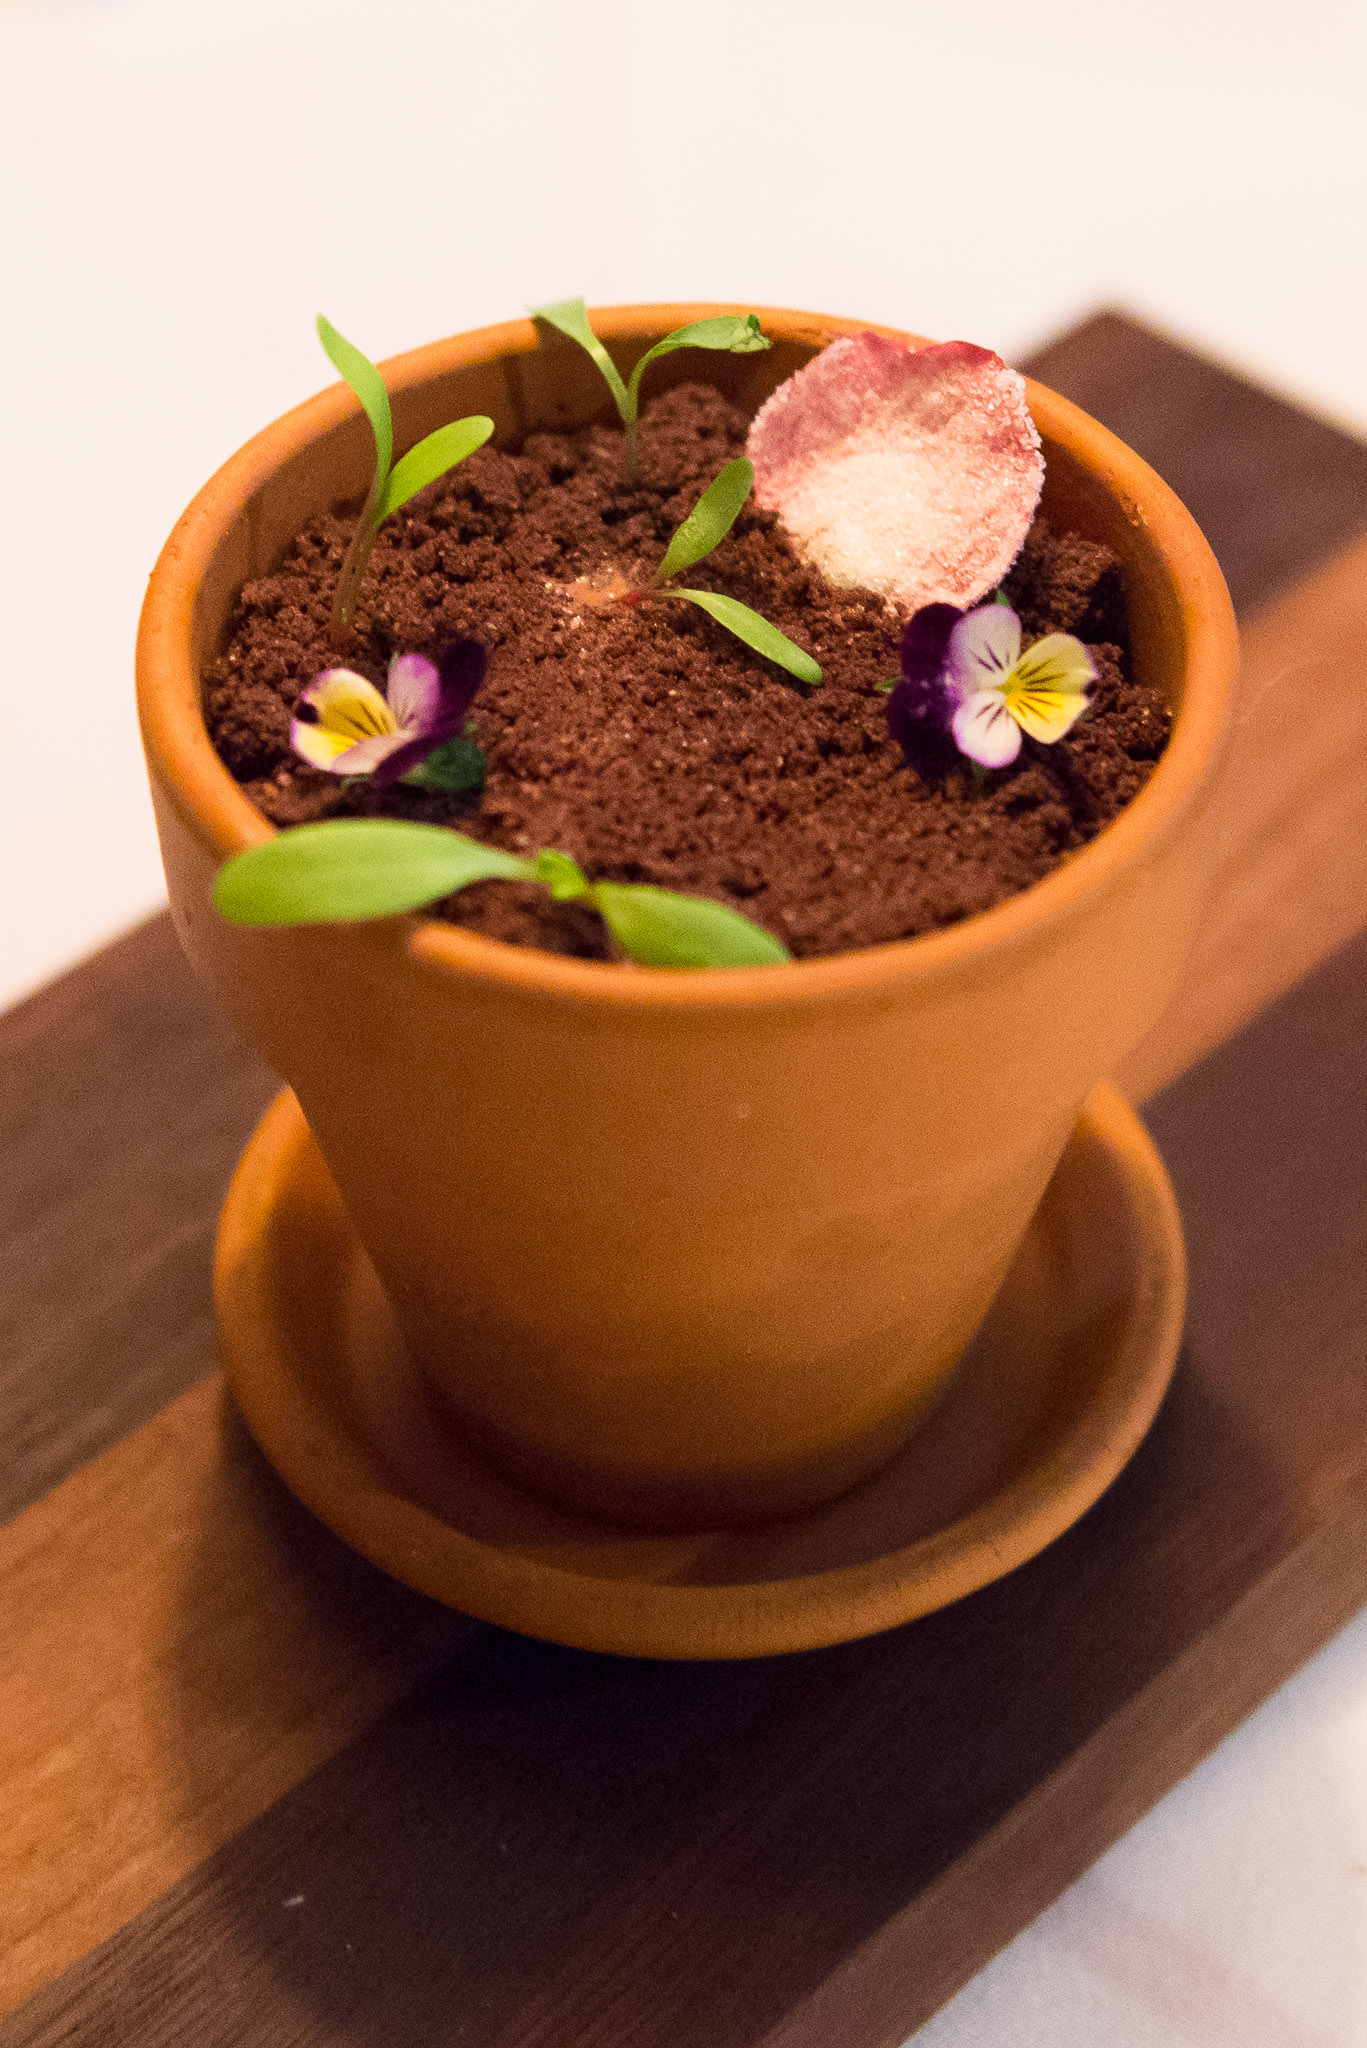 Chocolate garden: Valrhona chocolate mousse, salted caramel, peanut dacquoise, macadamias